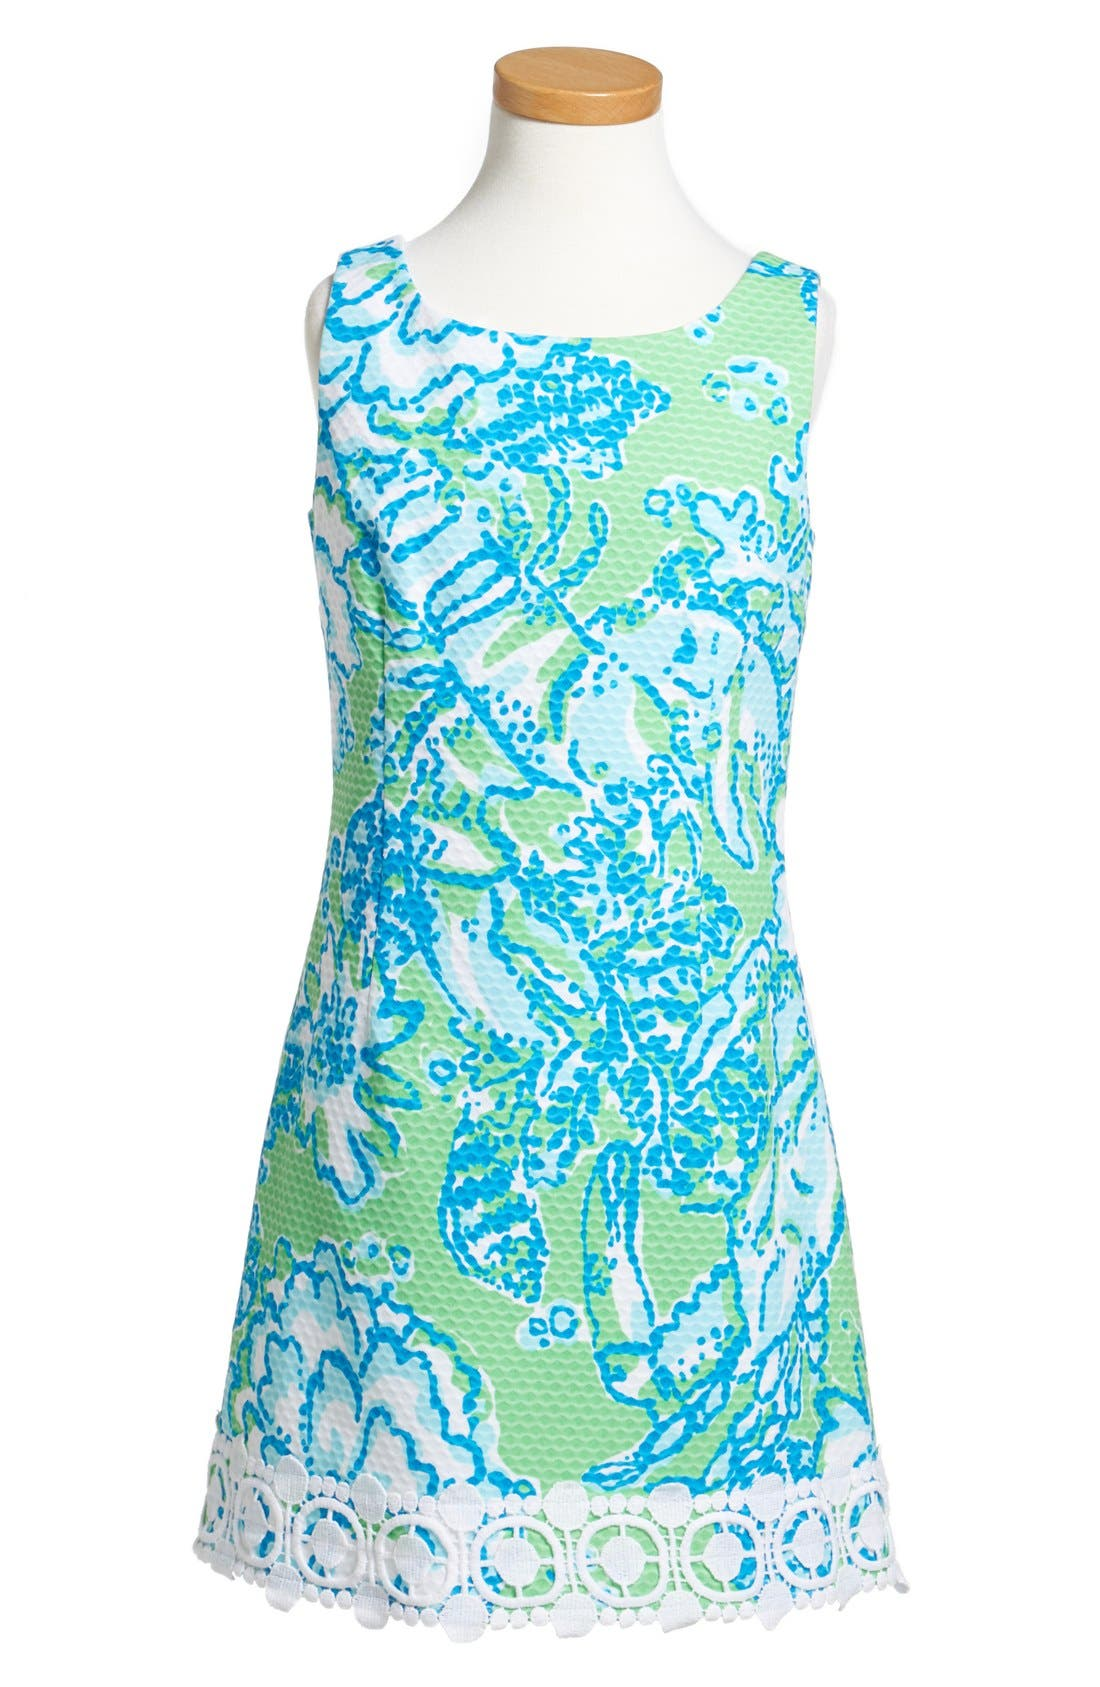 Main Image - Lilly Pulitzer® 'Little Delia' Sleeveless Piqué Dress (Little Girls & Big Girls)